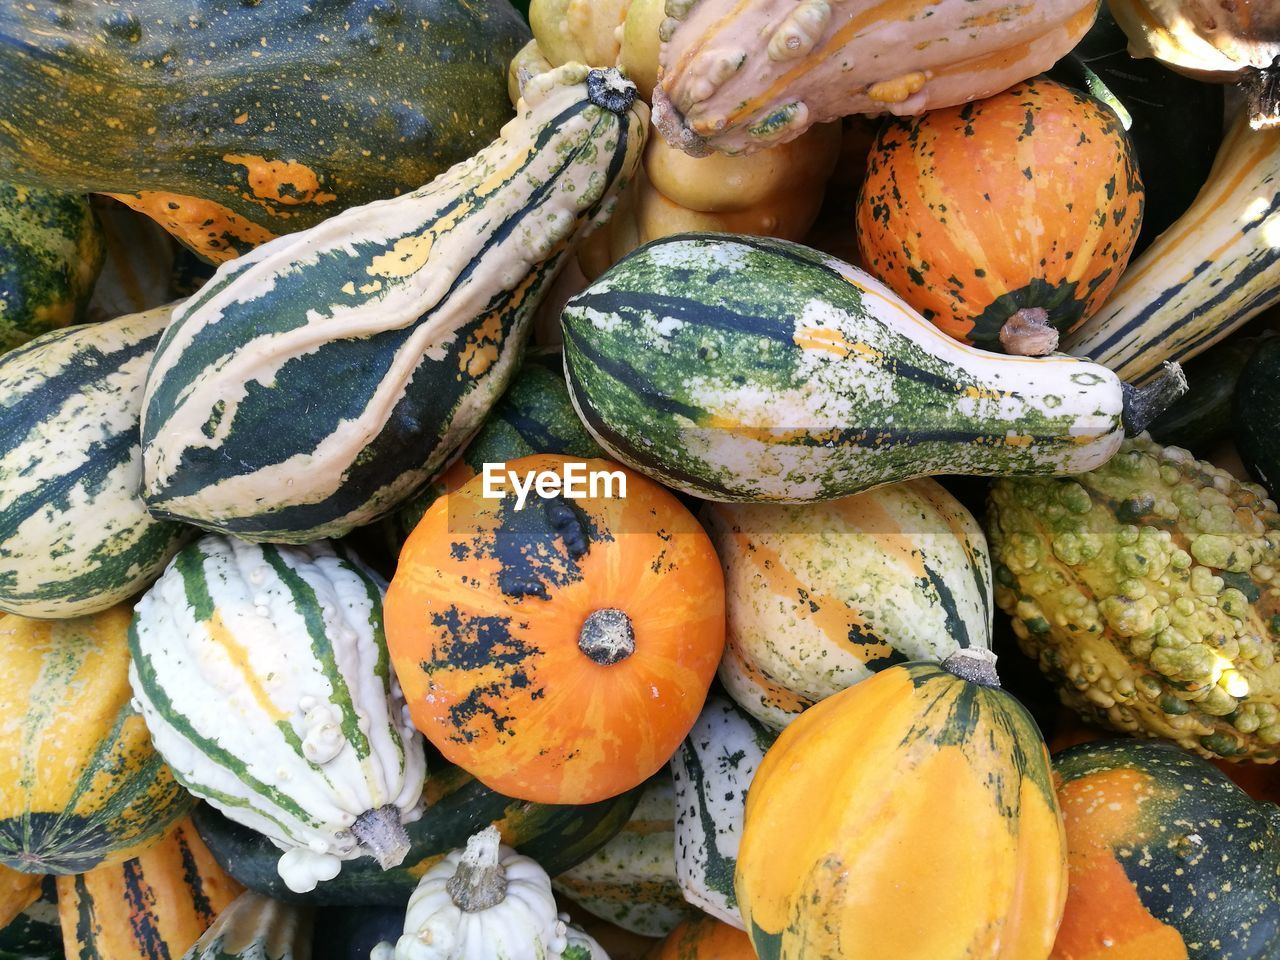 food and drink, healthy eating, food, wellbeing, freshness, market, pumpkin, large group of objects, vegetable, for sale, high angle view, retail, market stall, backgrounds, choice, day, still life, squash - vegetable, full frame, variation, no people, gourd, organic, outdoors